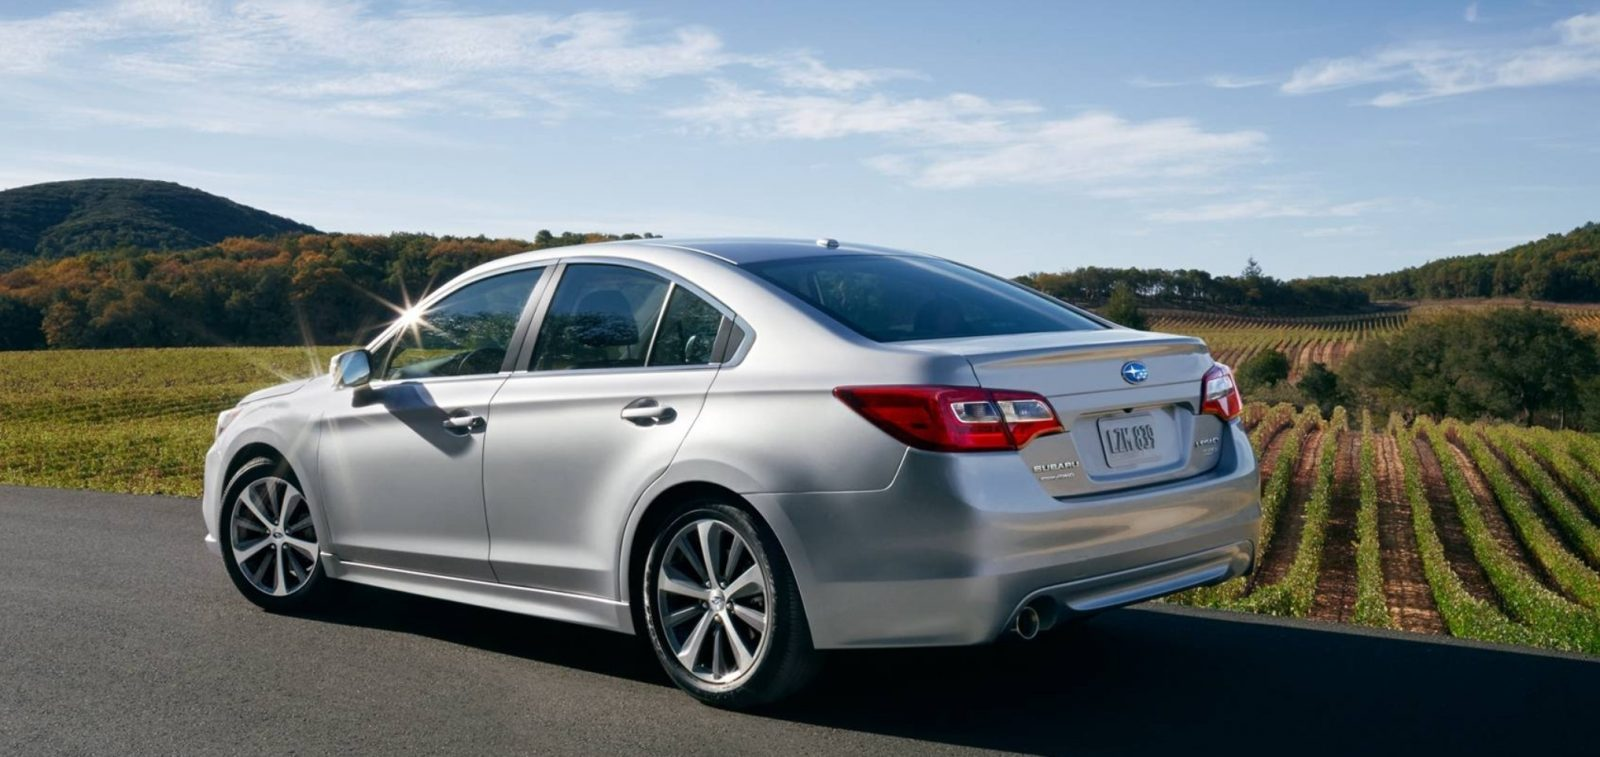 2015 Subaru Legacy Sedan -- More Lux and Tech in Cabin -- Finally Some Exterior Style -- Even 36MPG Highway  35